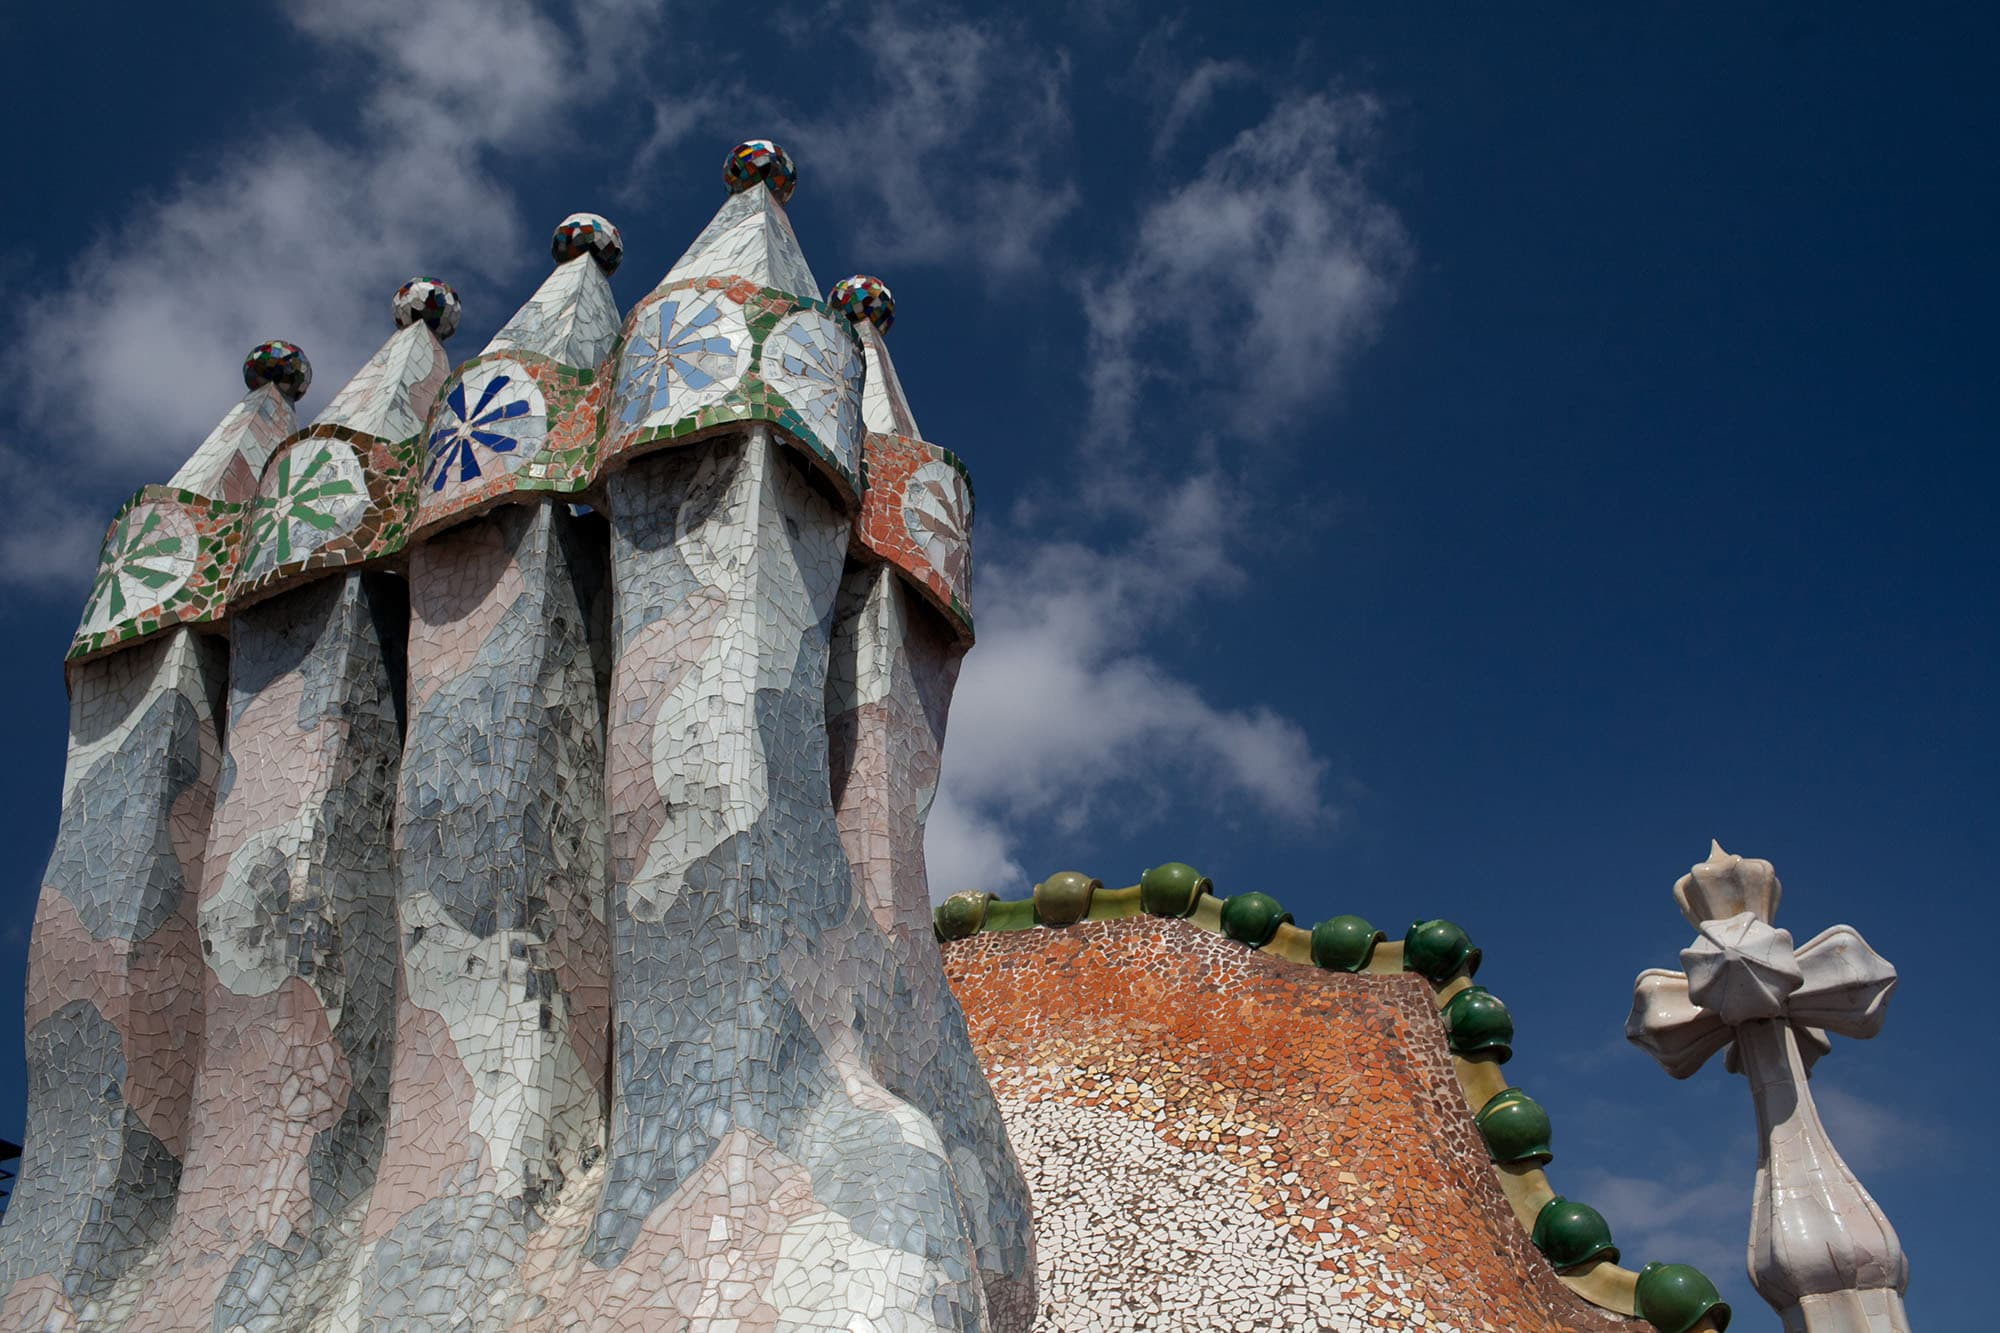 Gaudi Architecture in Barcelona, Spain.